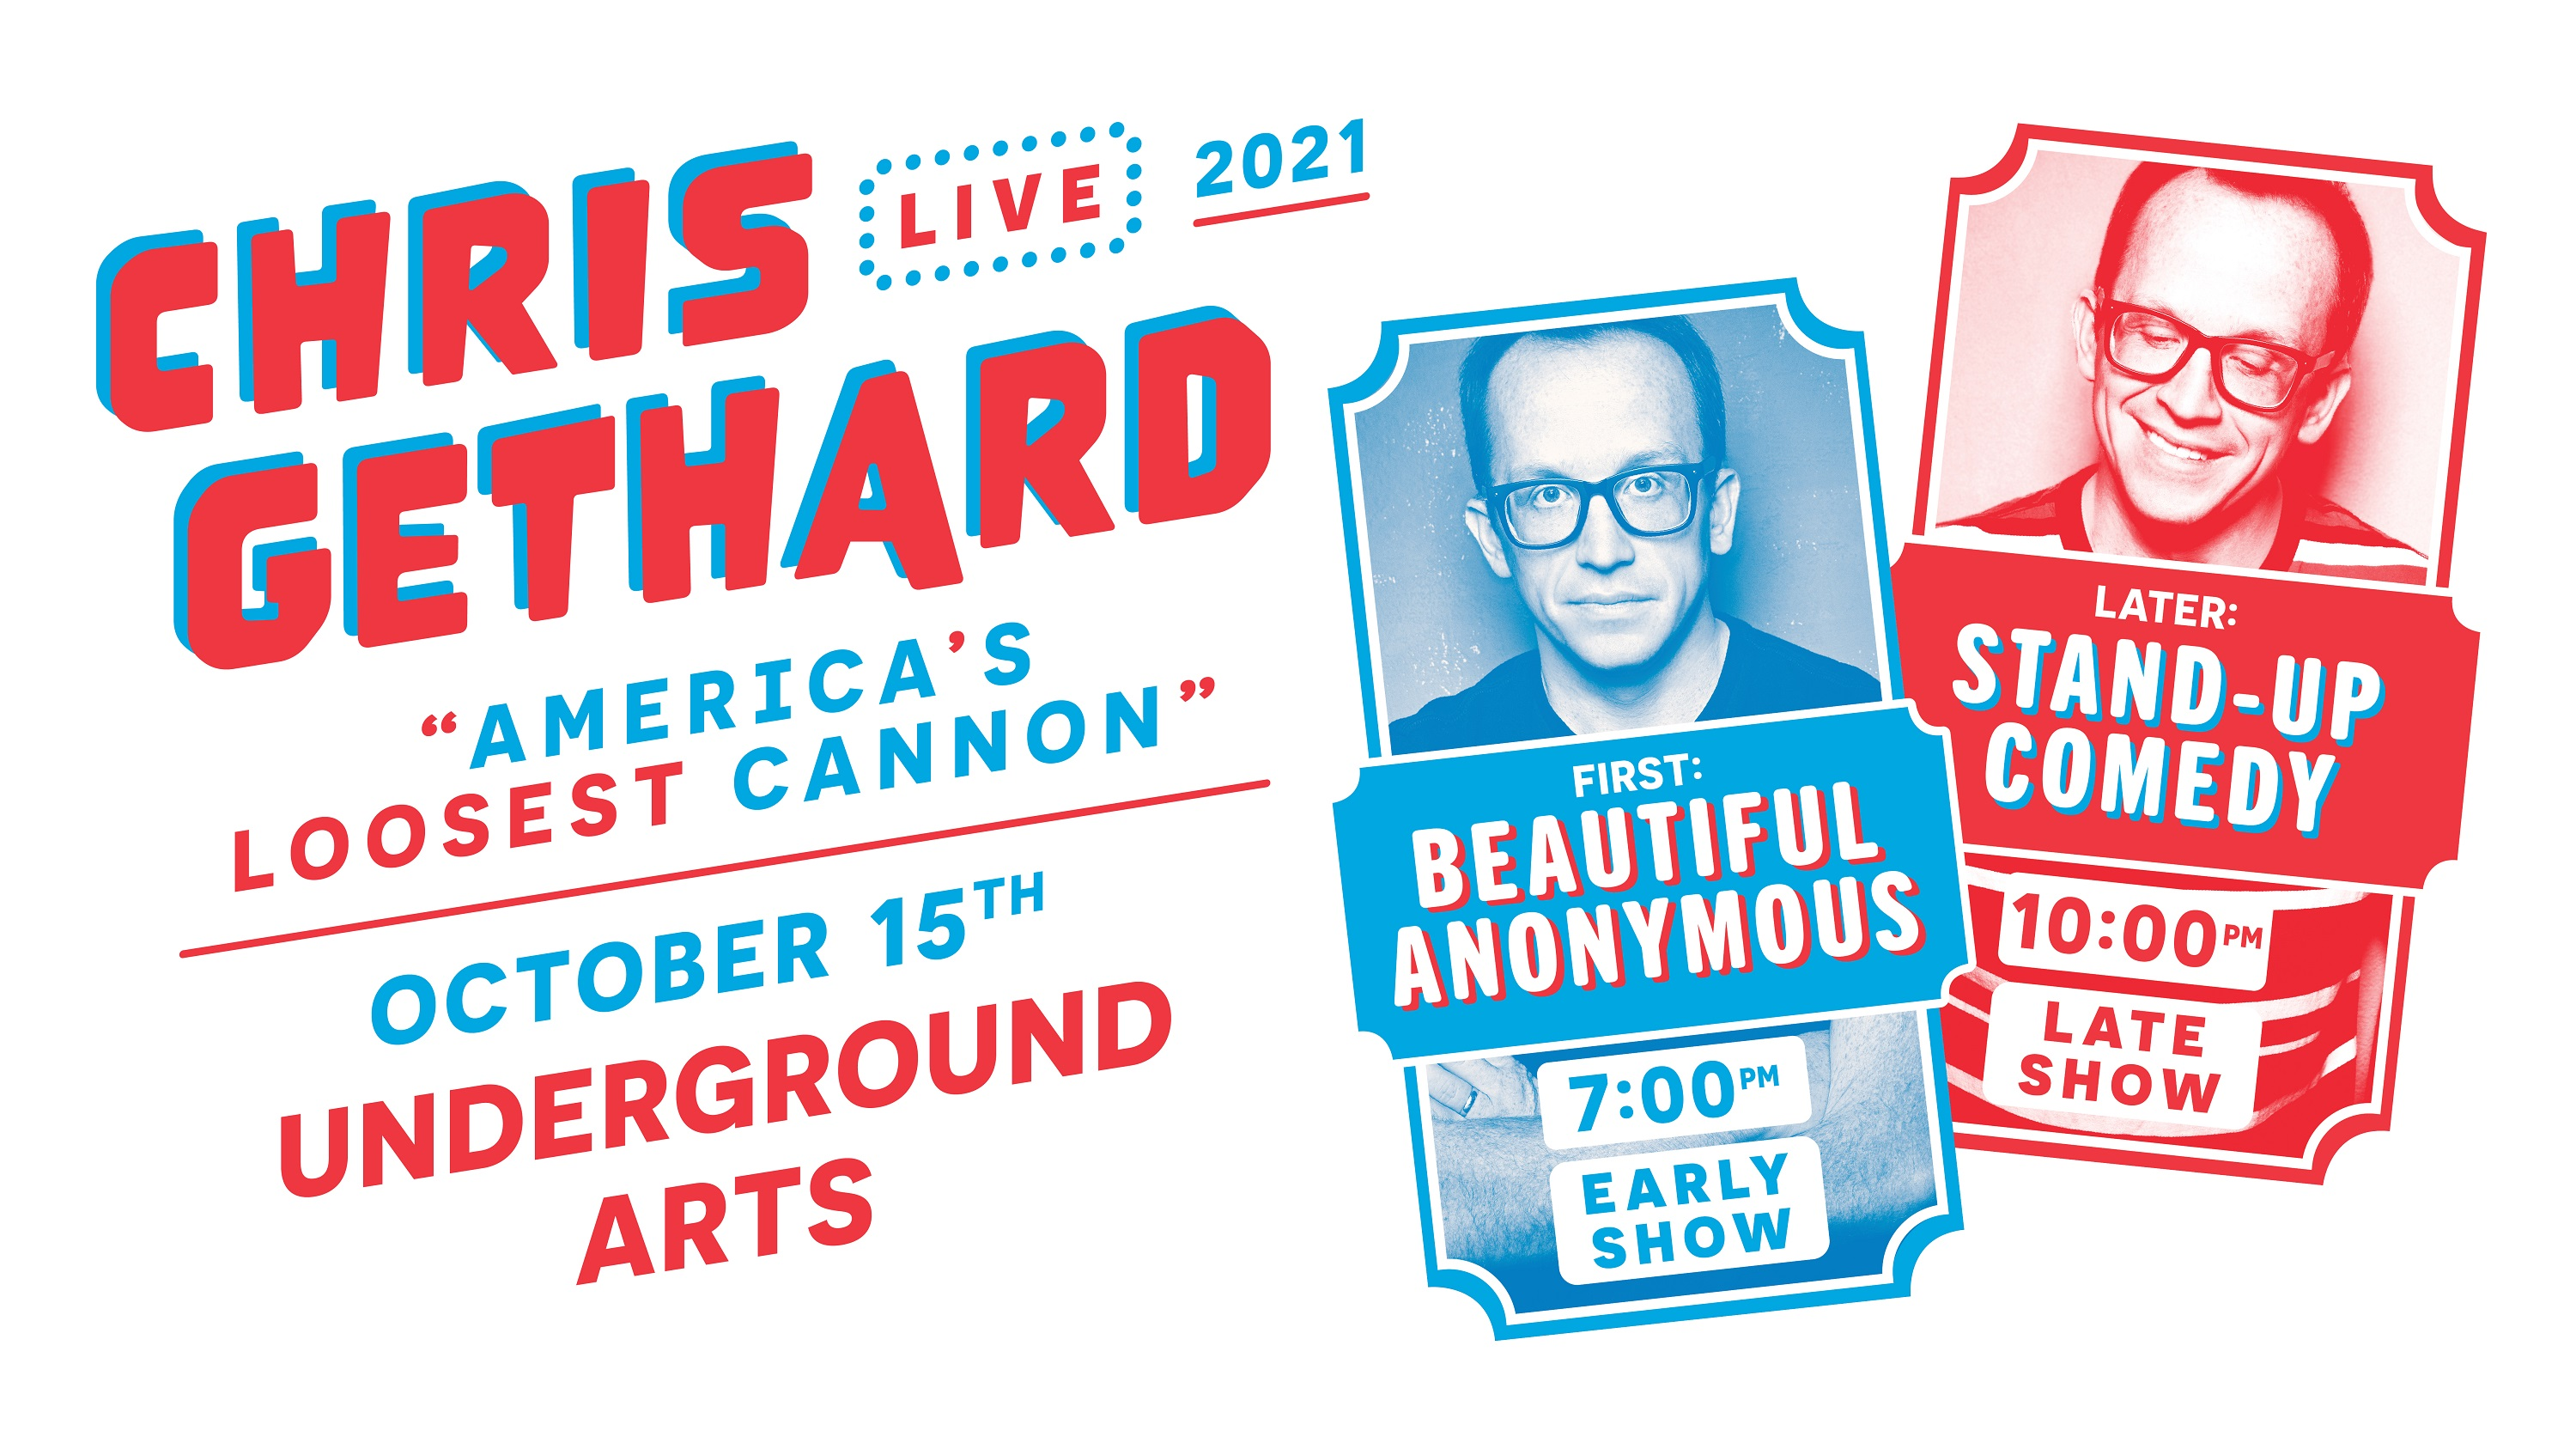 Chris Gethard - America's Loosest Cannon Tour: Main Image